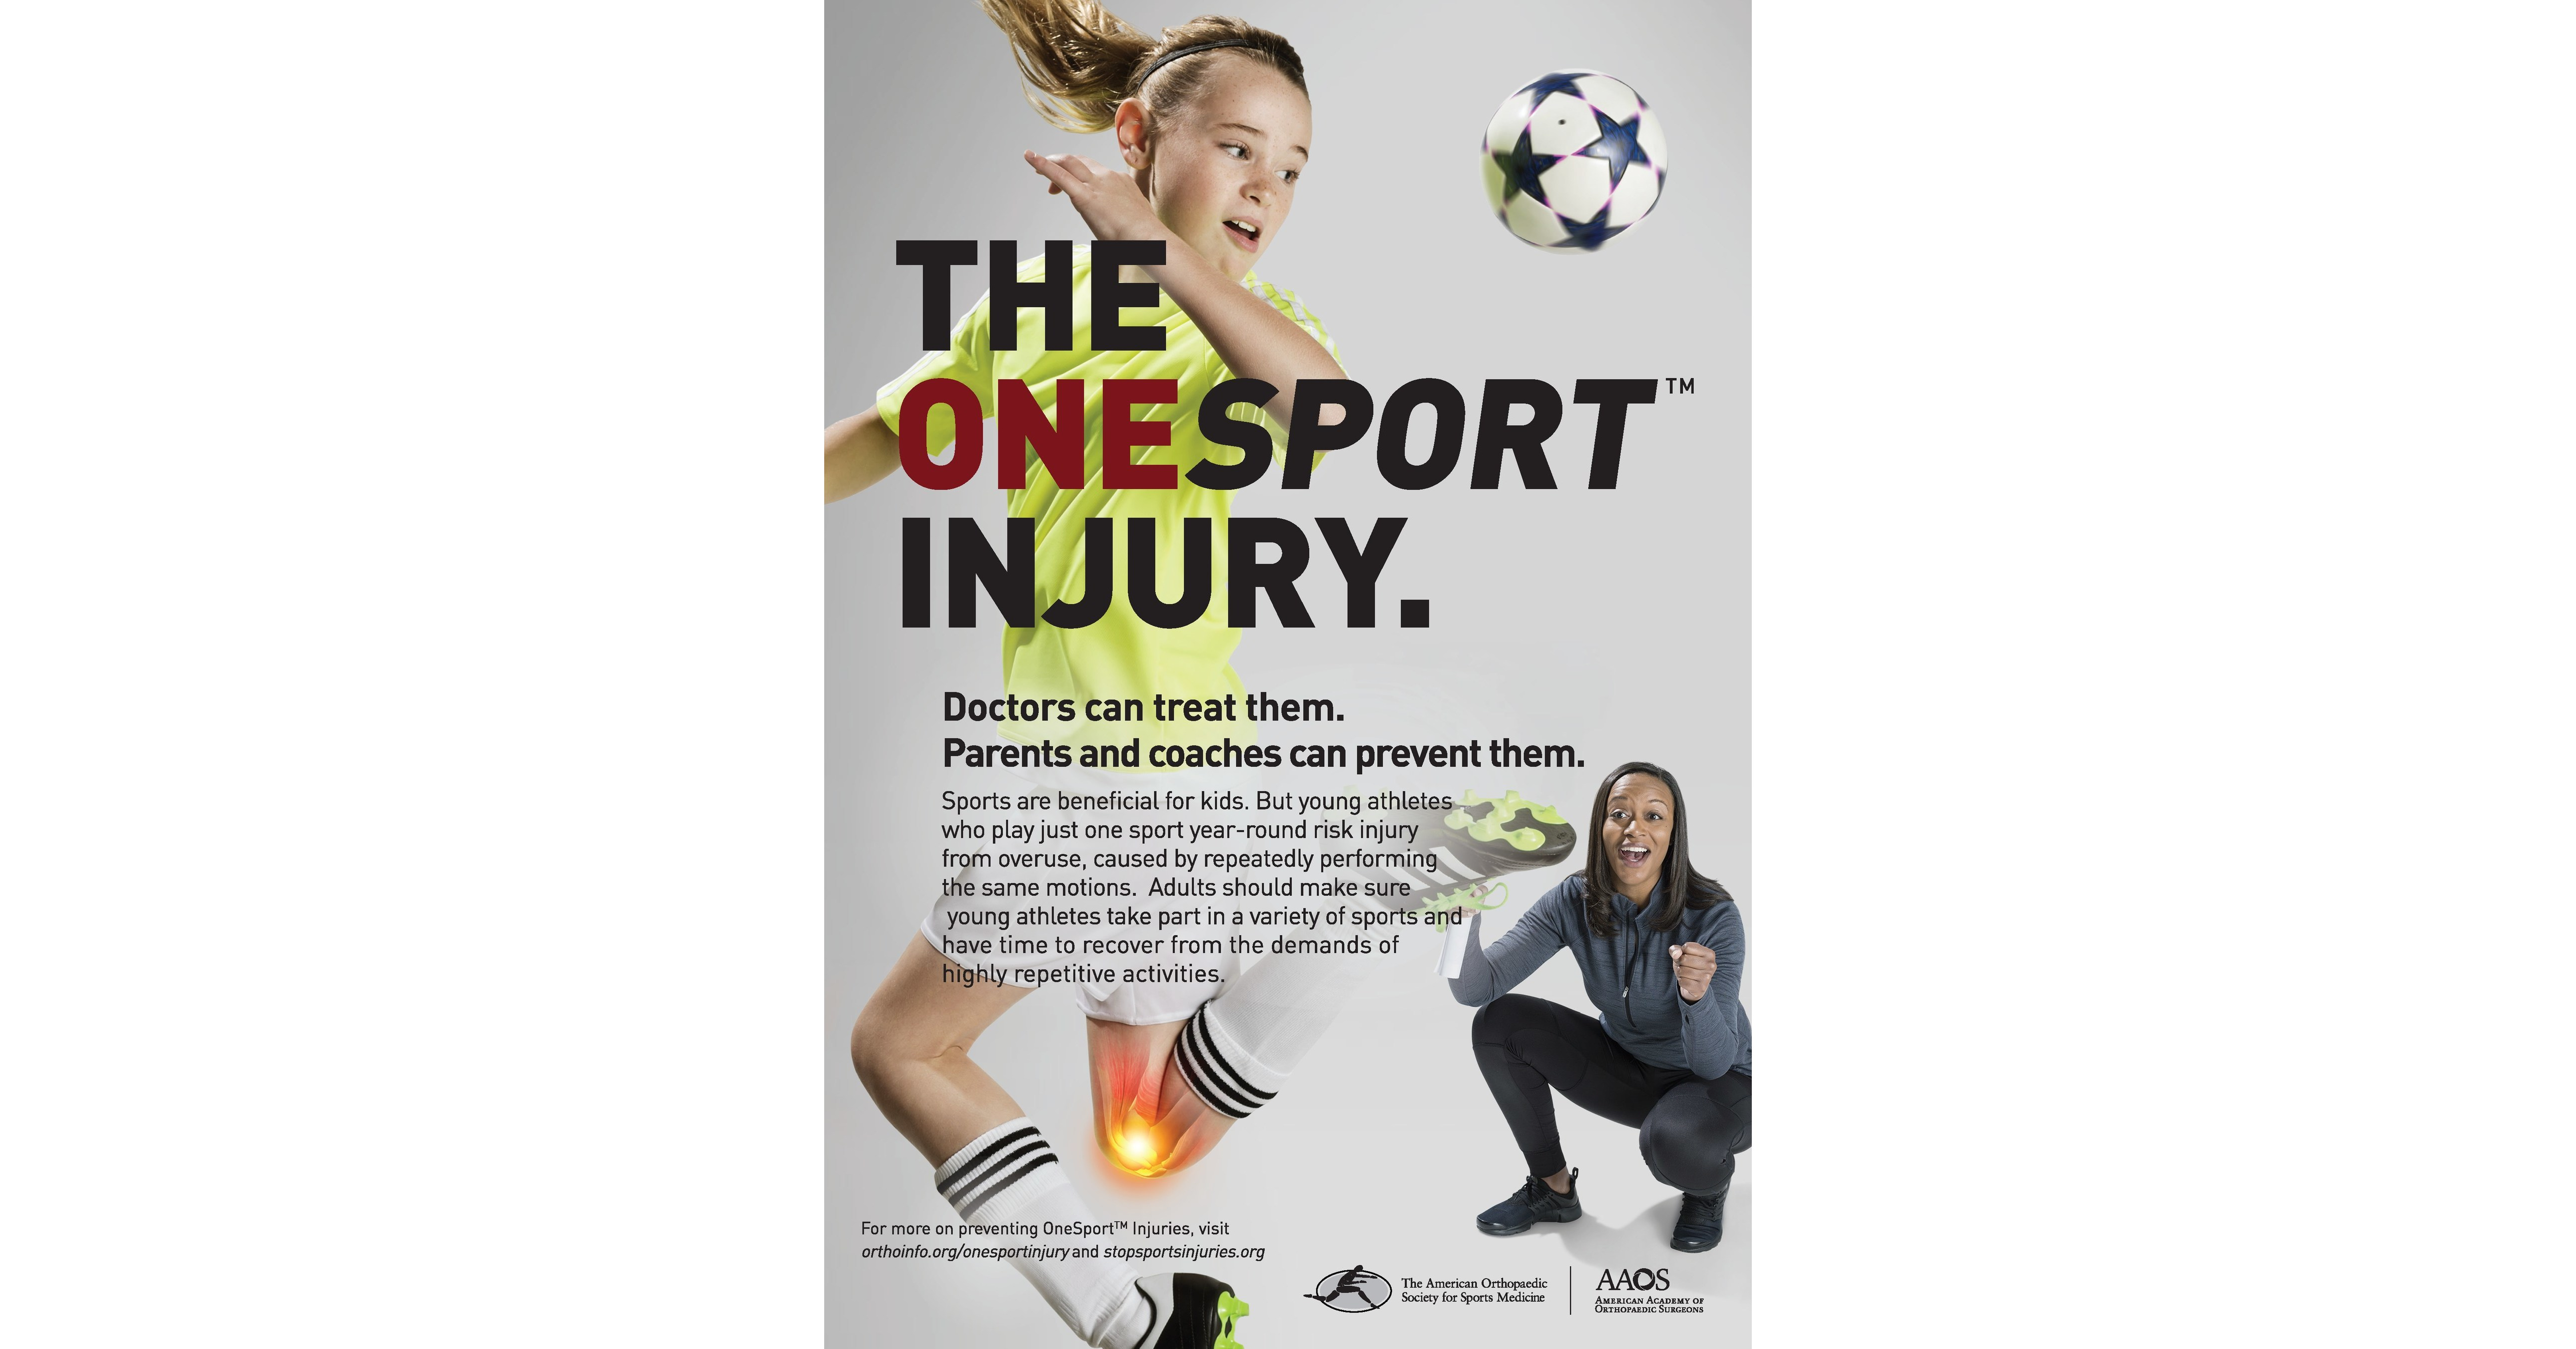 New campaign tackles falls prevention, youth sports specialization